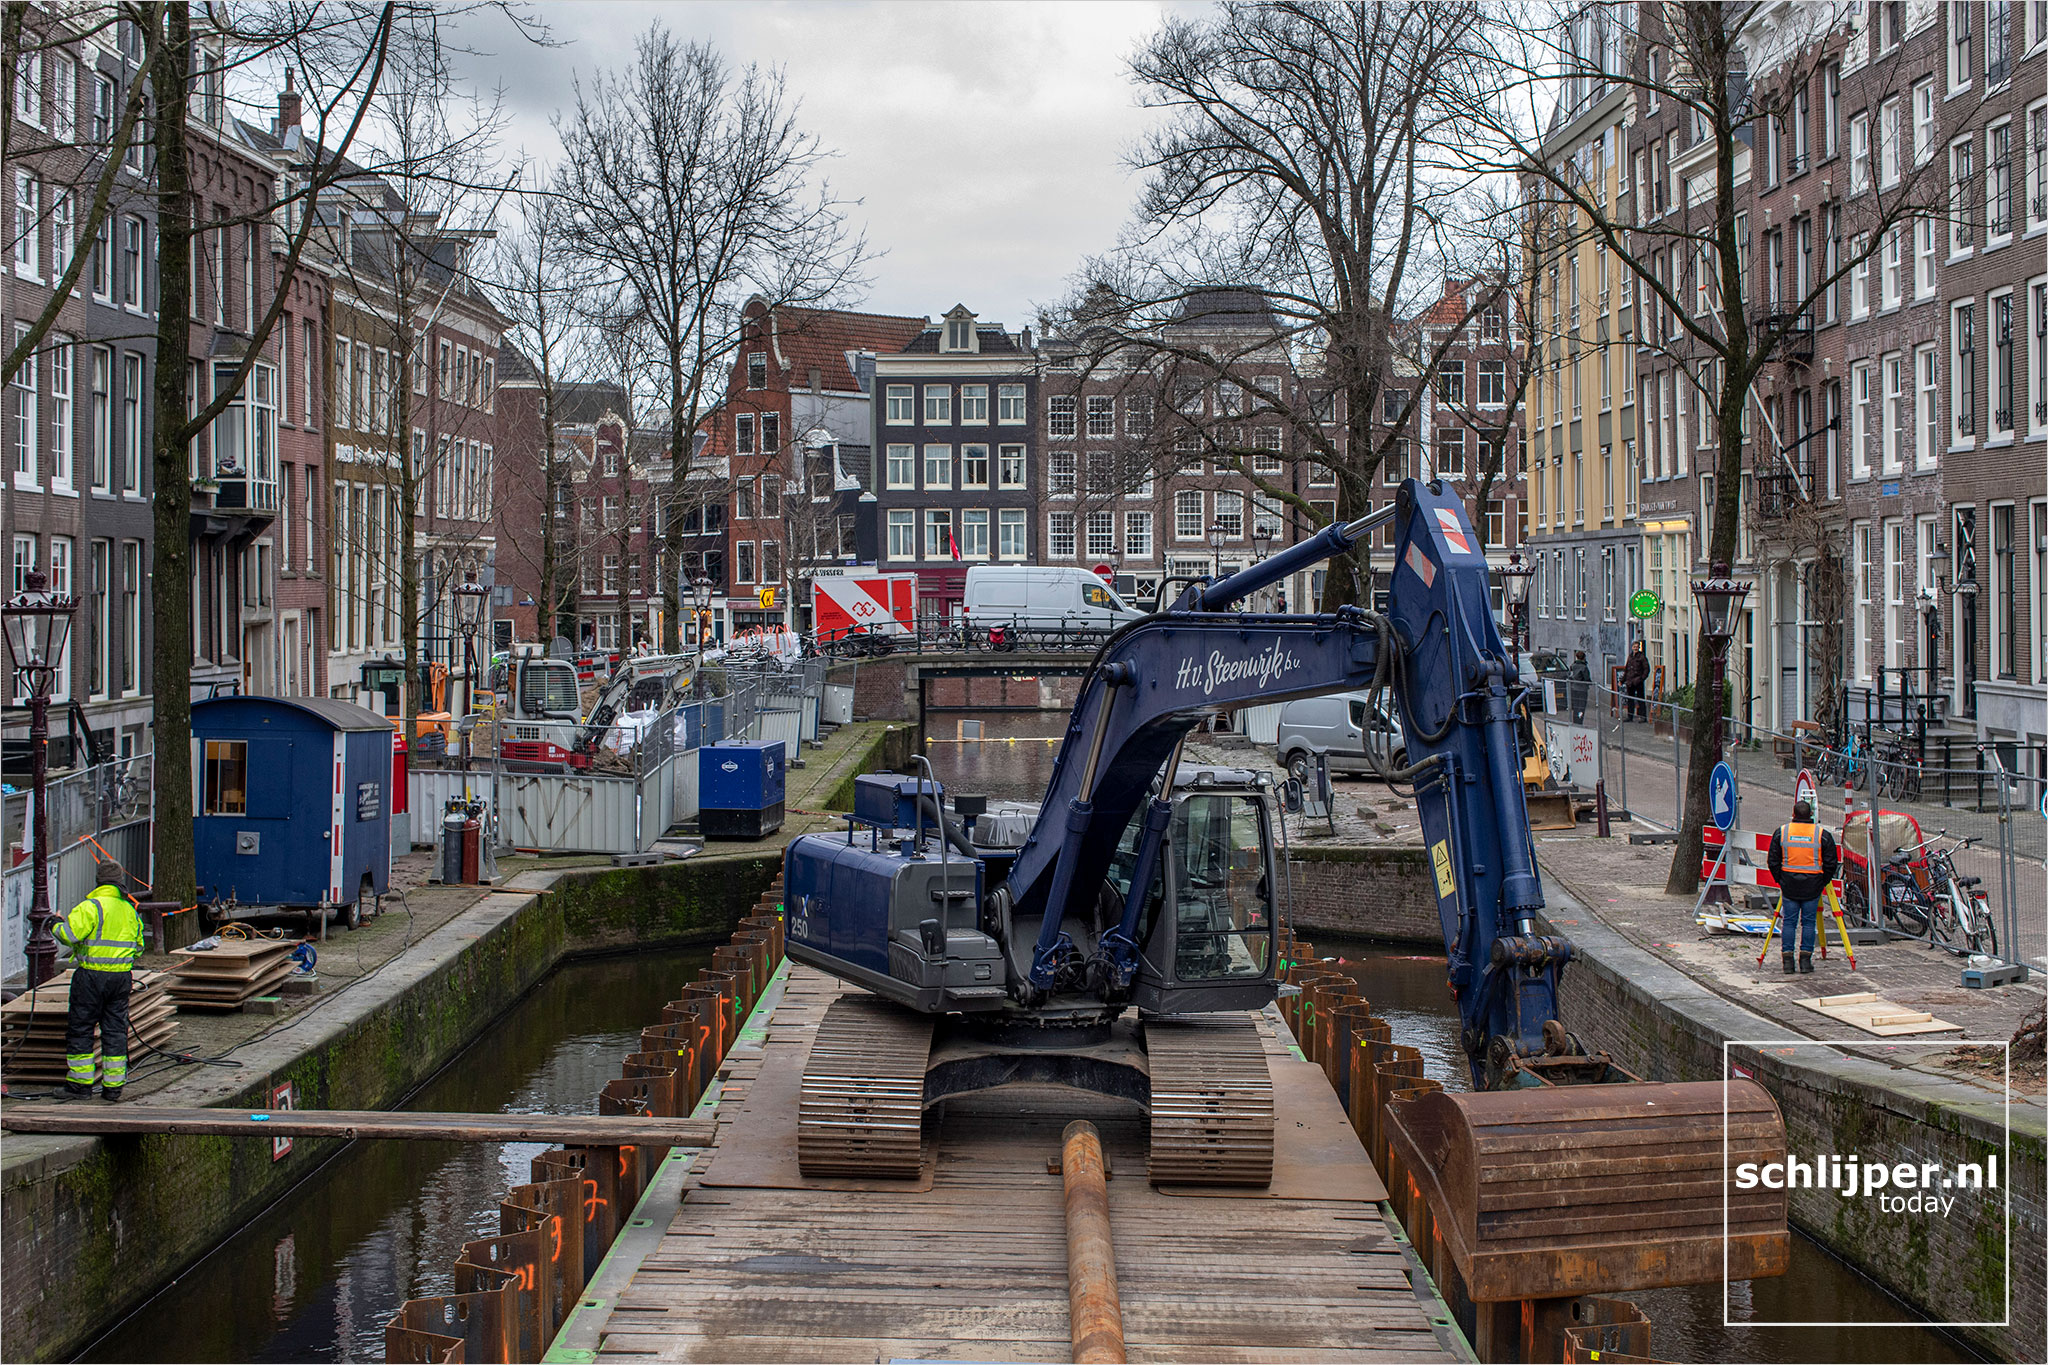 The Netherlands, Amsterdam, 11 januari 2021